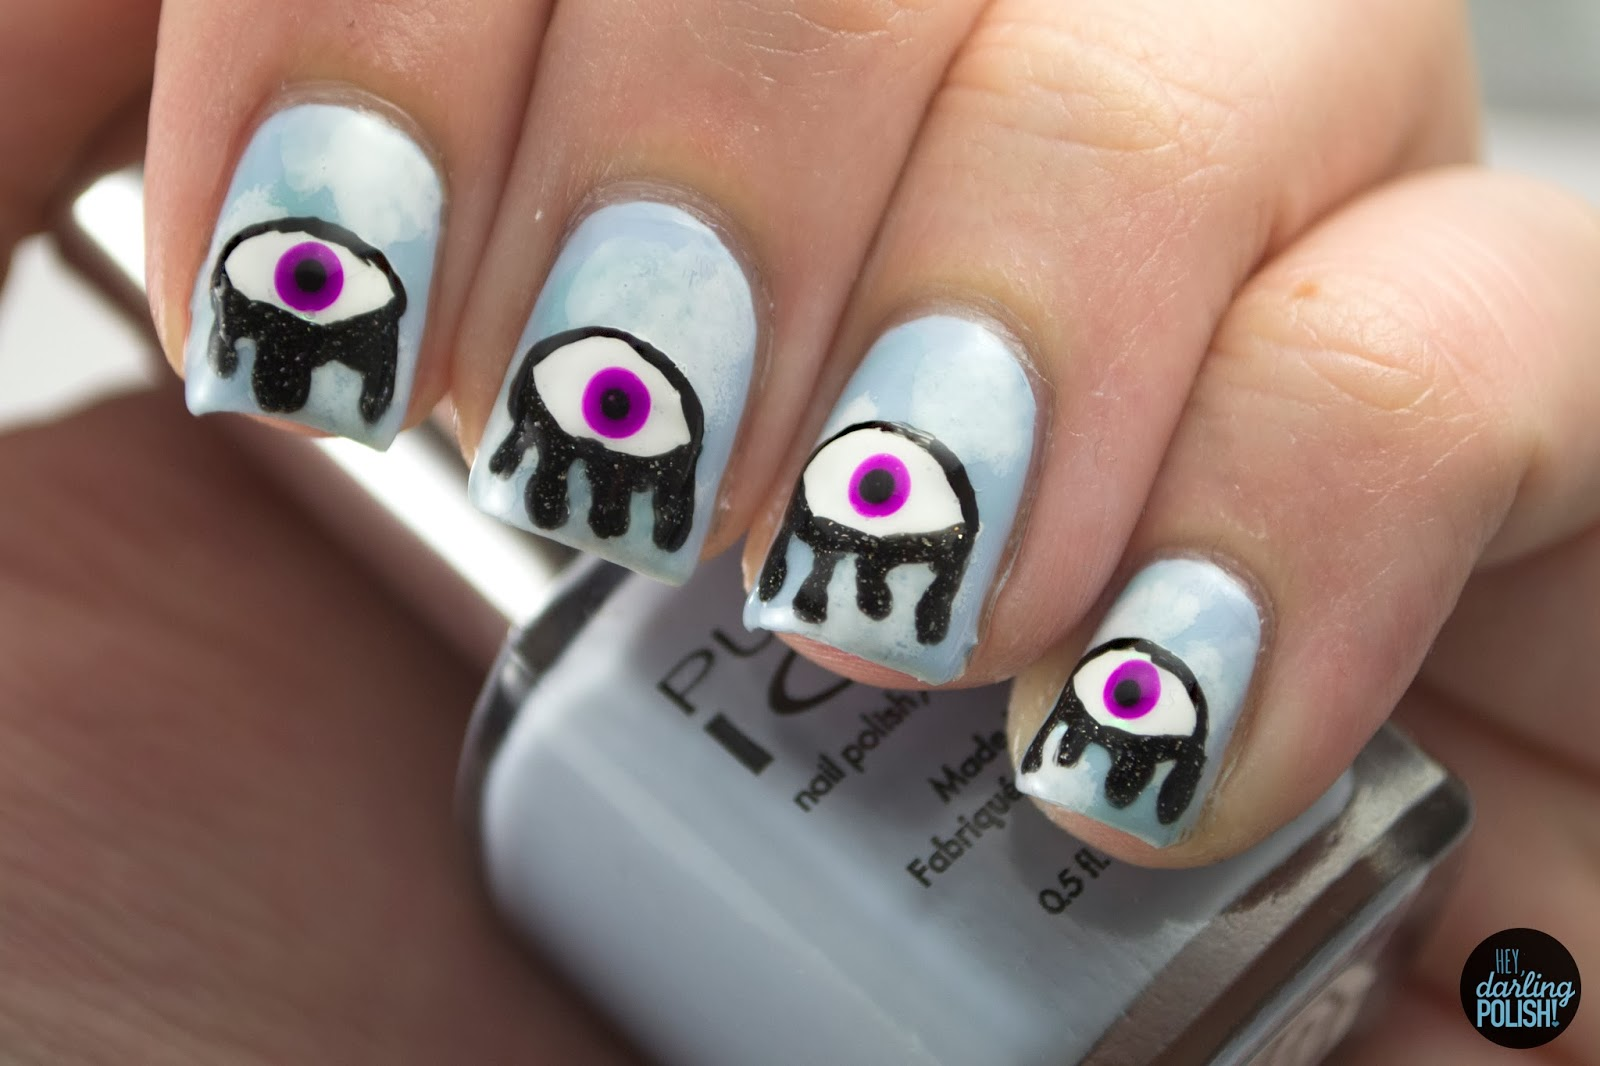 nails, nail art, nail polish, polish, surrealism, eyes, drips, hey darling polish, nail art a go go